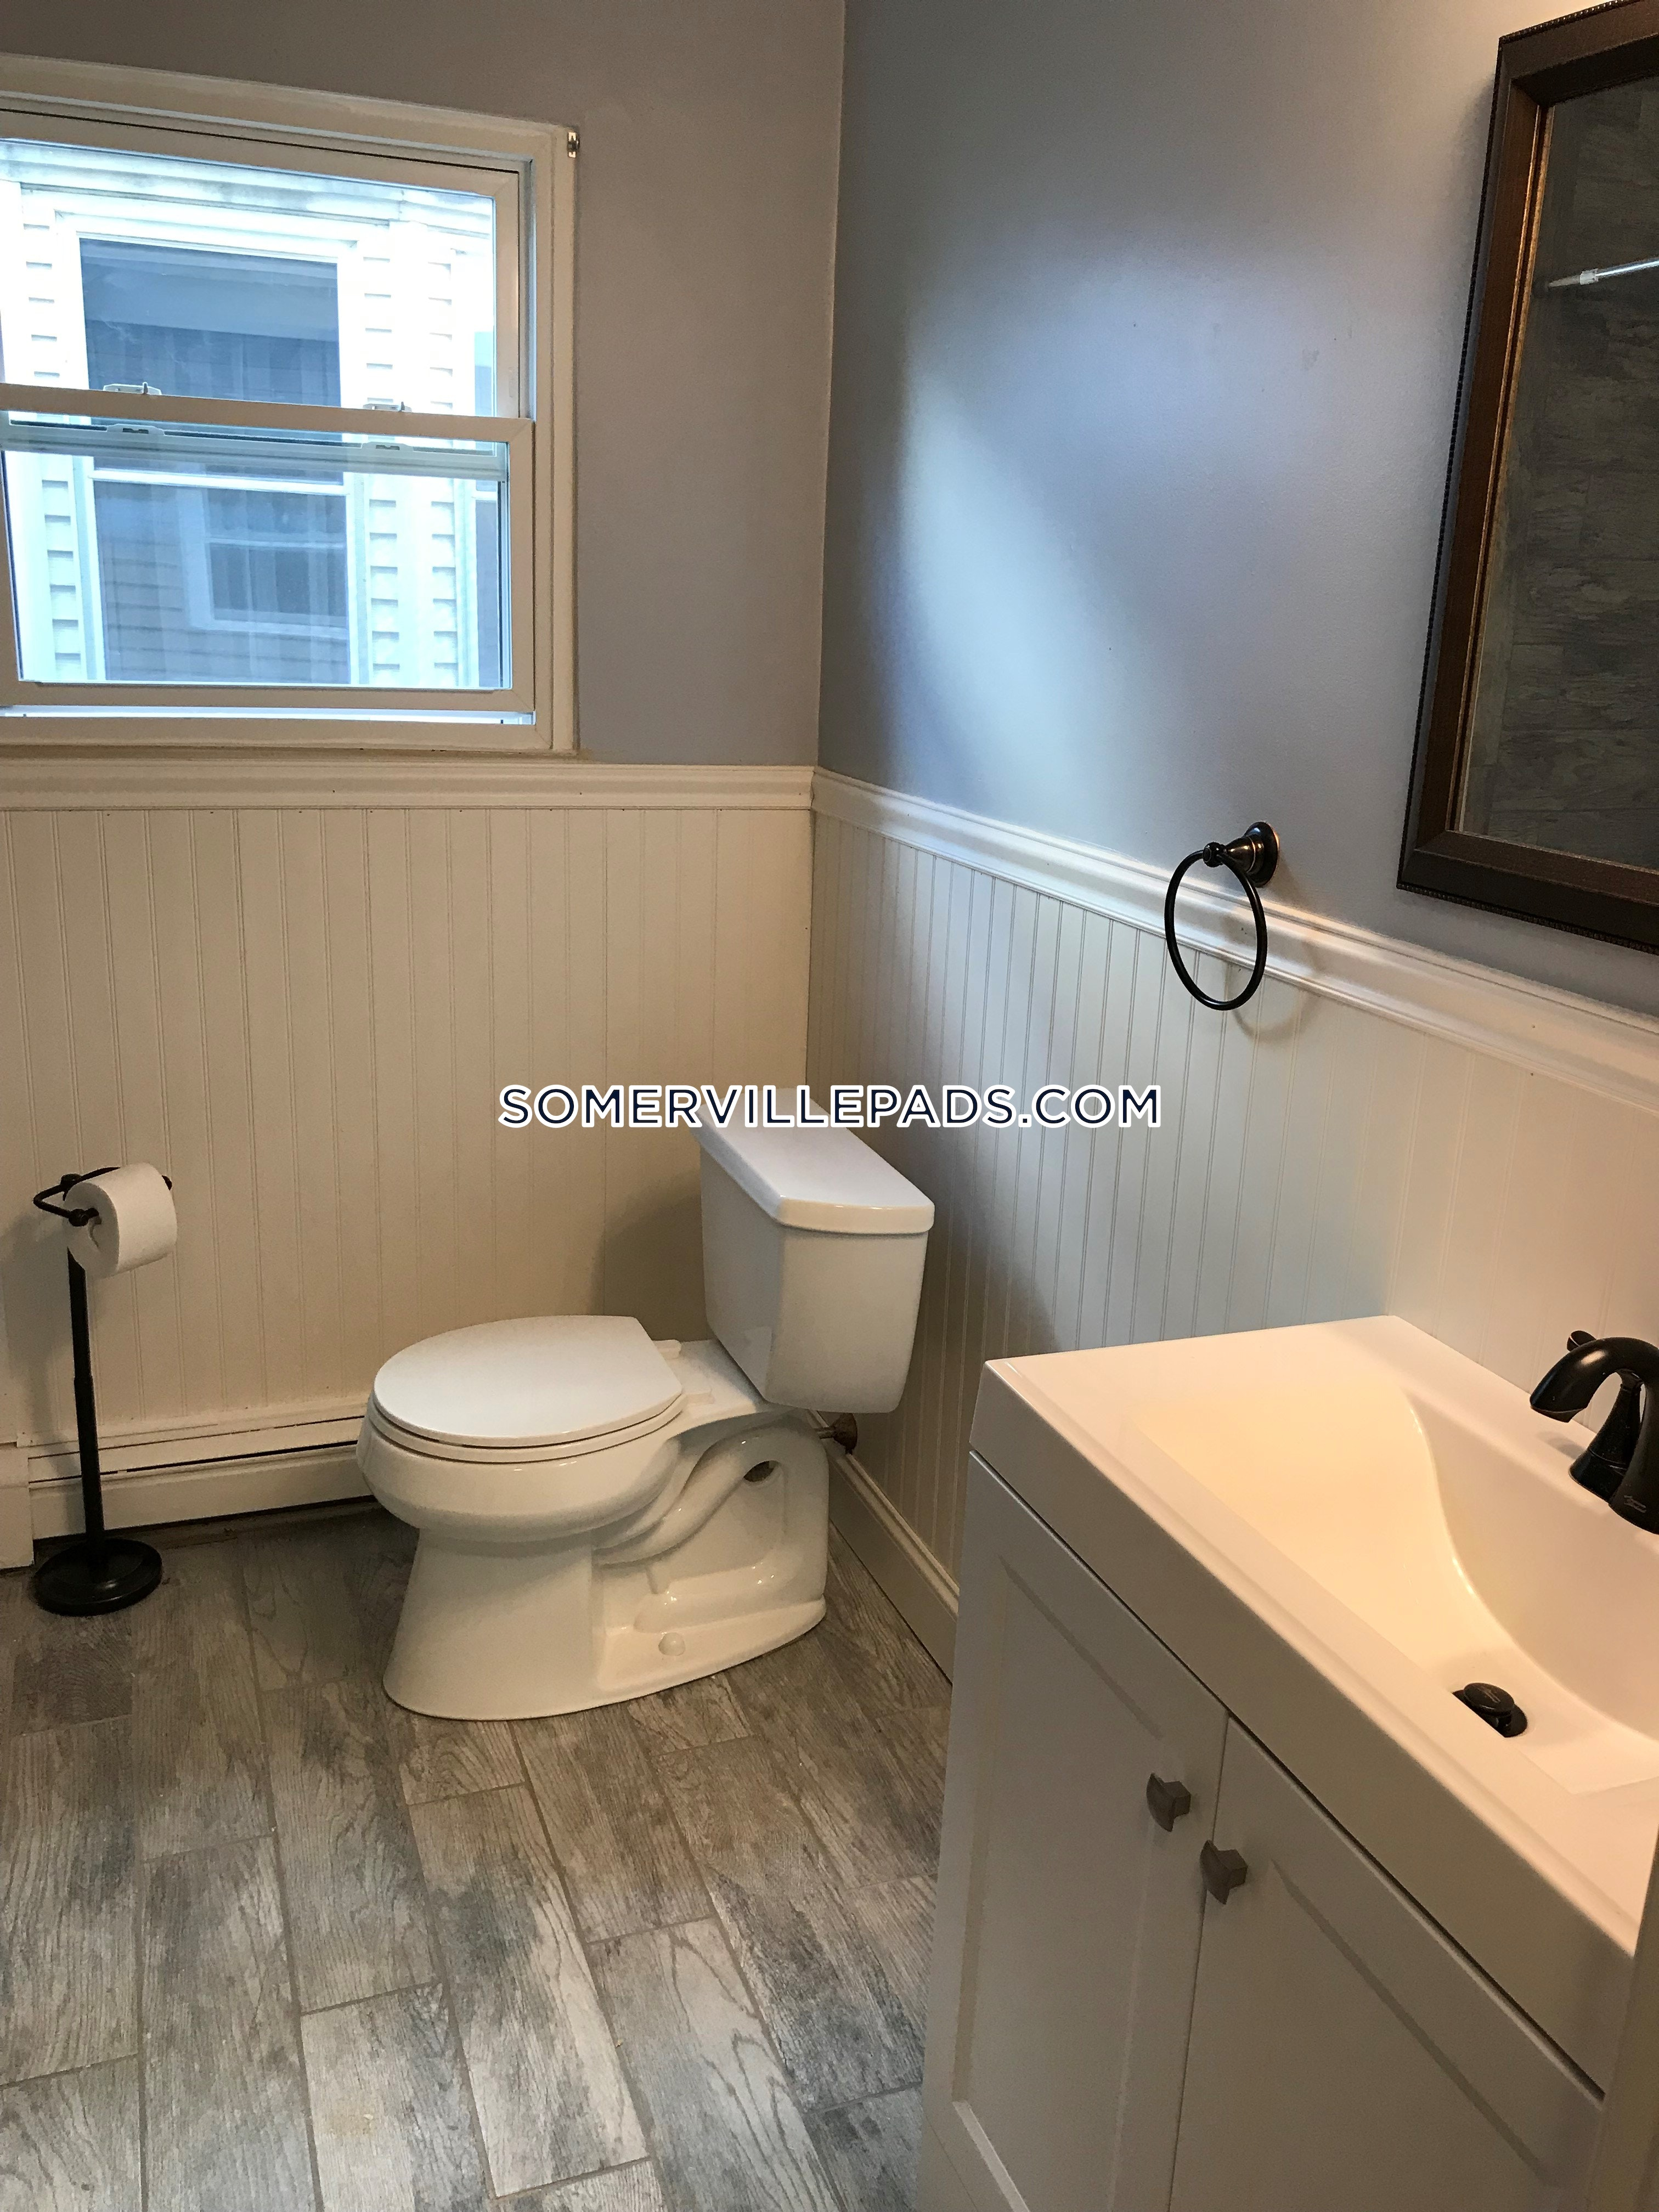 3-beds-1-bath-somerville-tufts-3100-55976